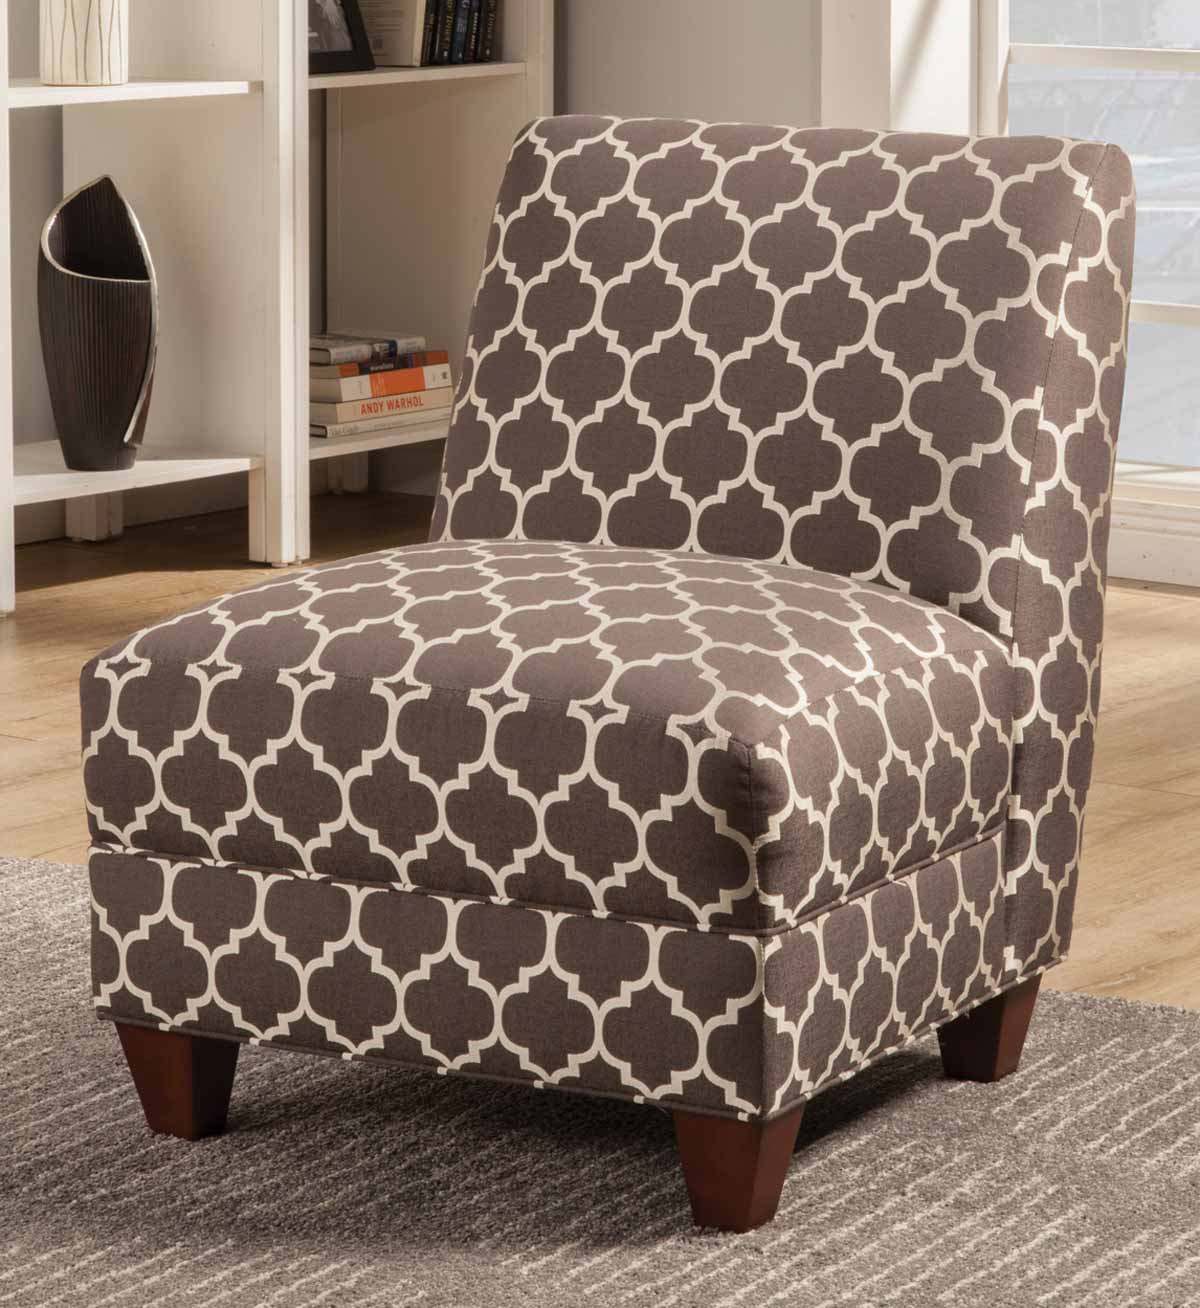 Coaster 902528 Accent Chair - Grey/White Quatrefoil